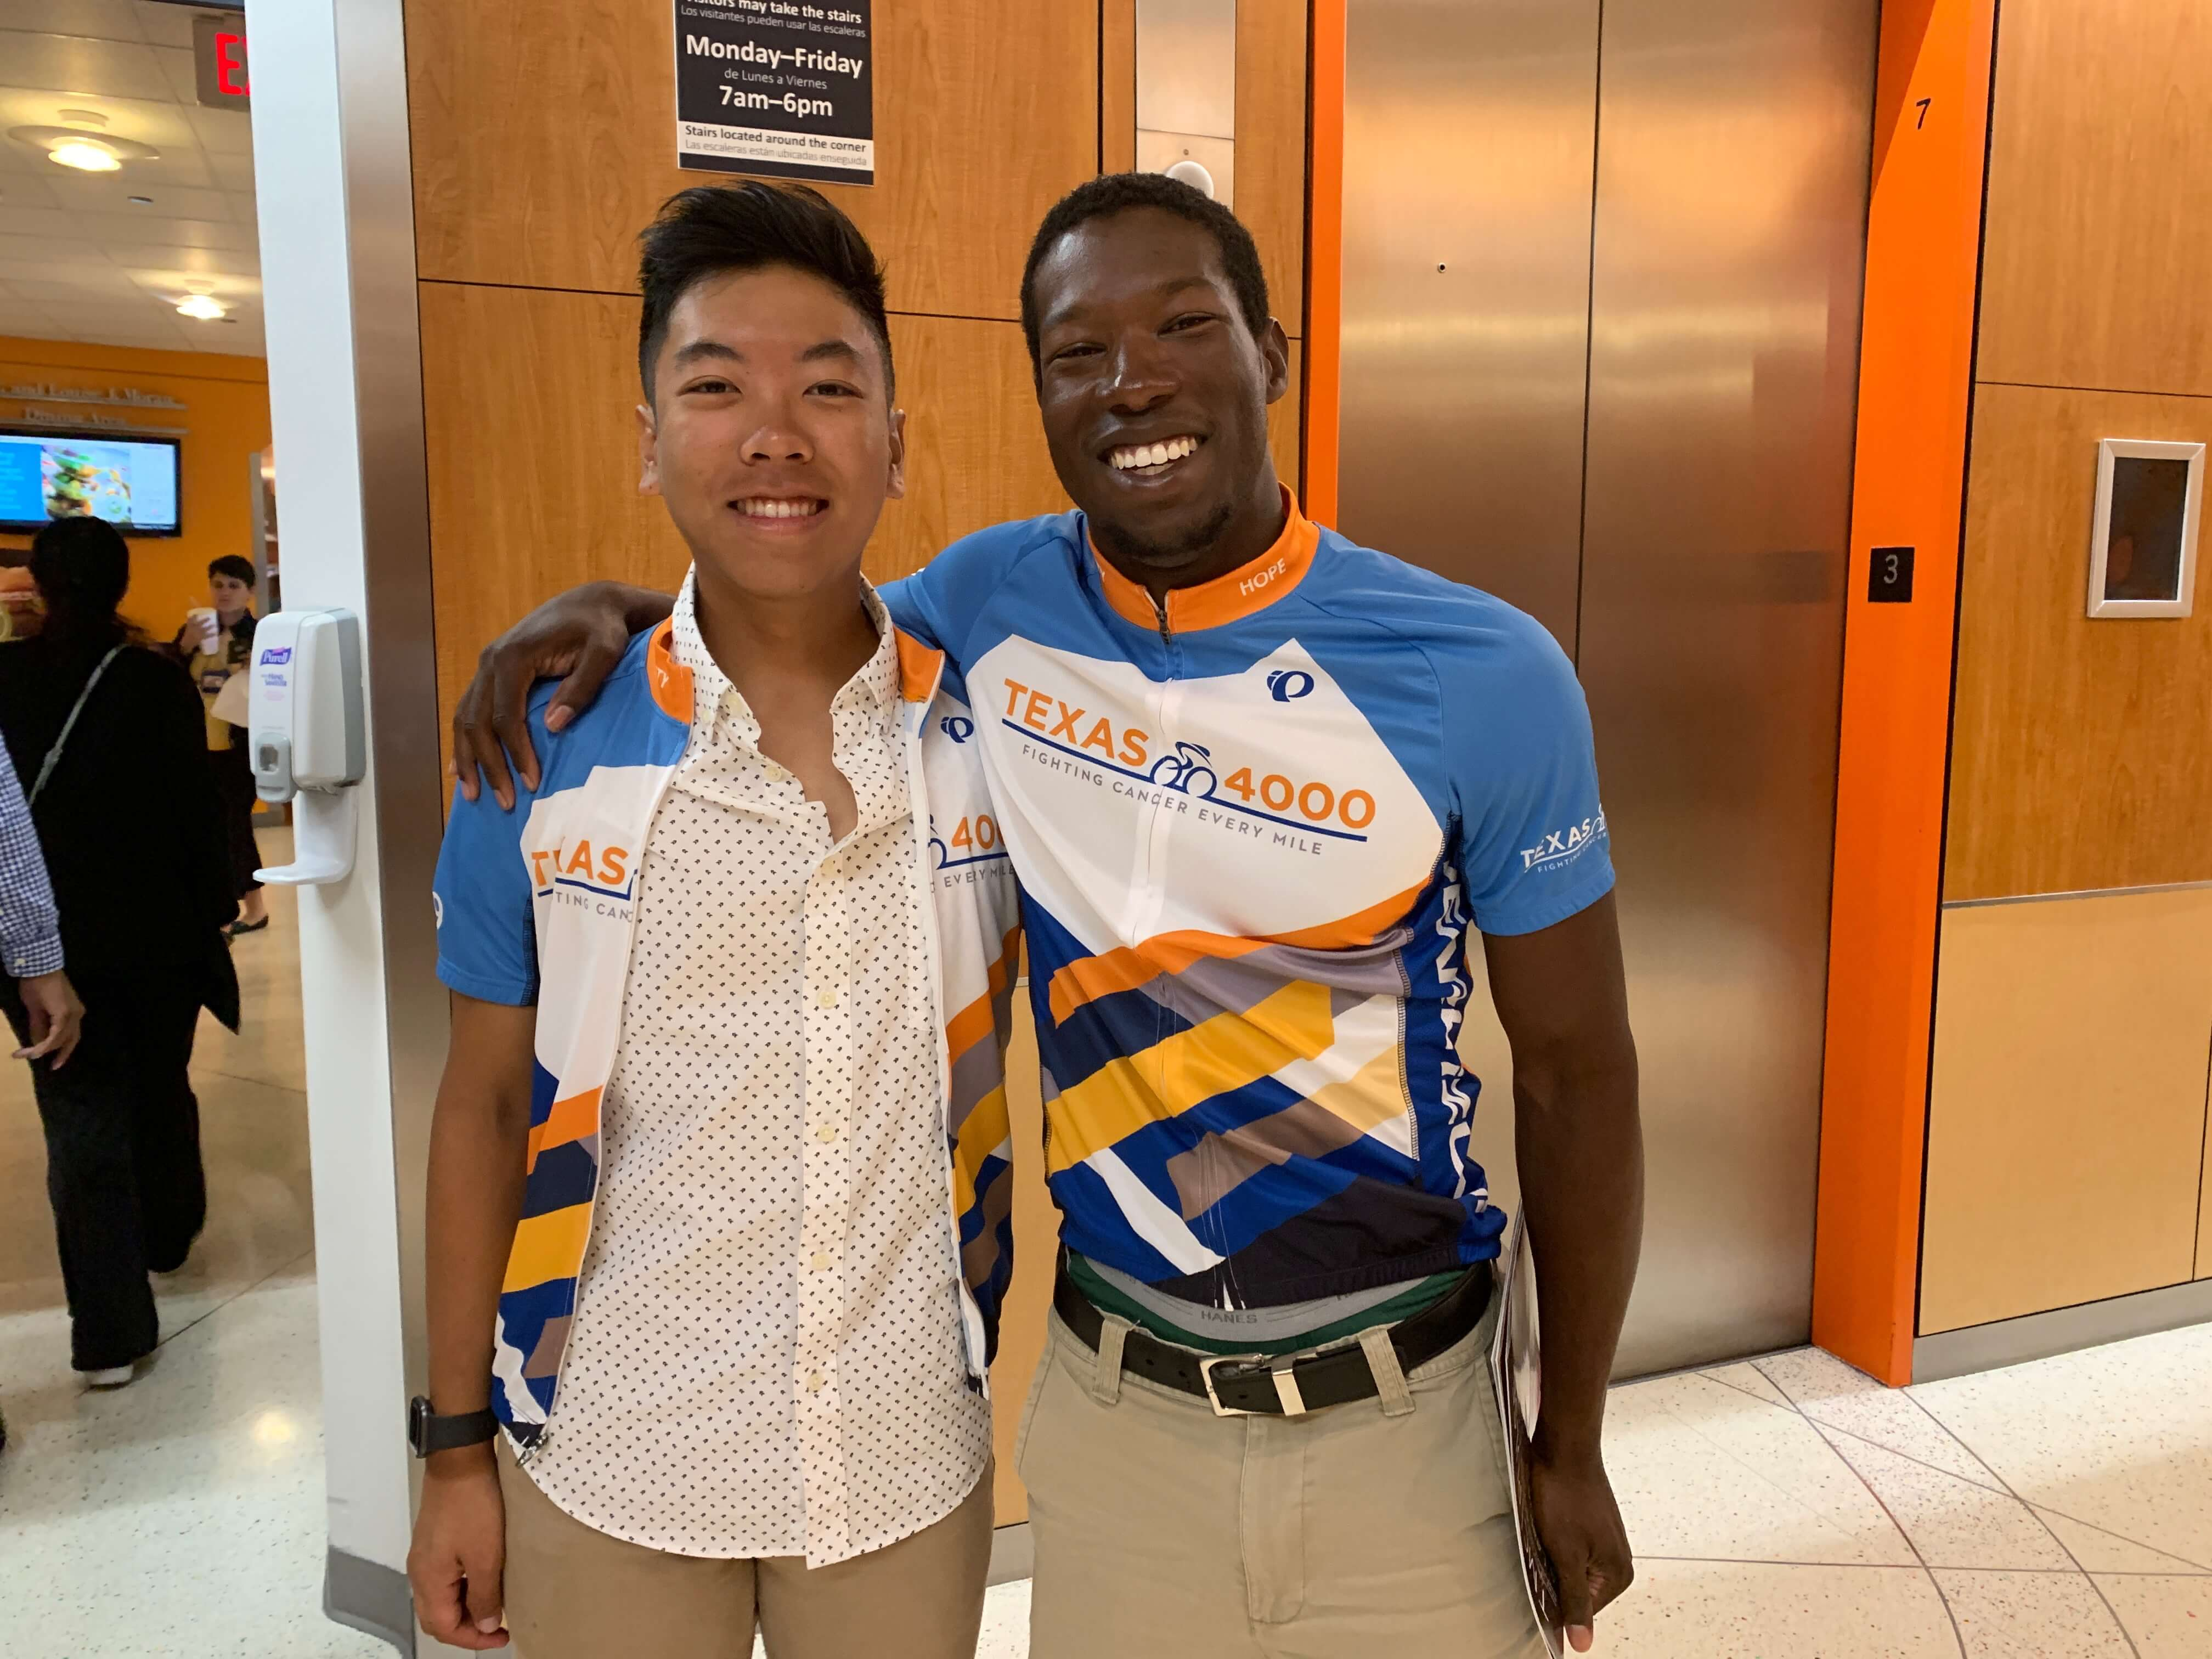 Texas 4000 riders Brandon Nguyen, a recent UT graduate, and UT graduate student Marlon Bailey at Texas Children's Hospital.